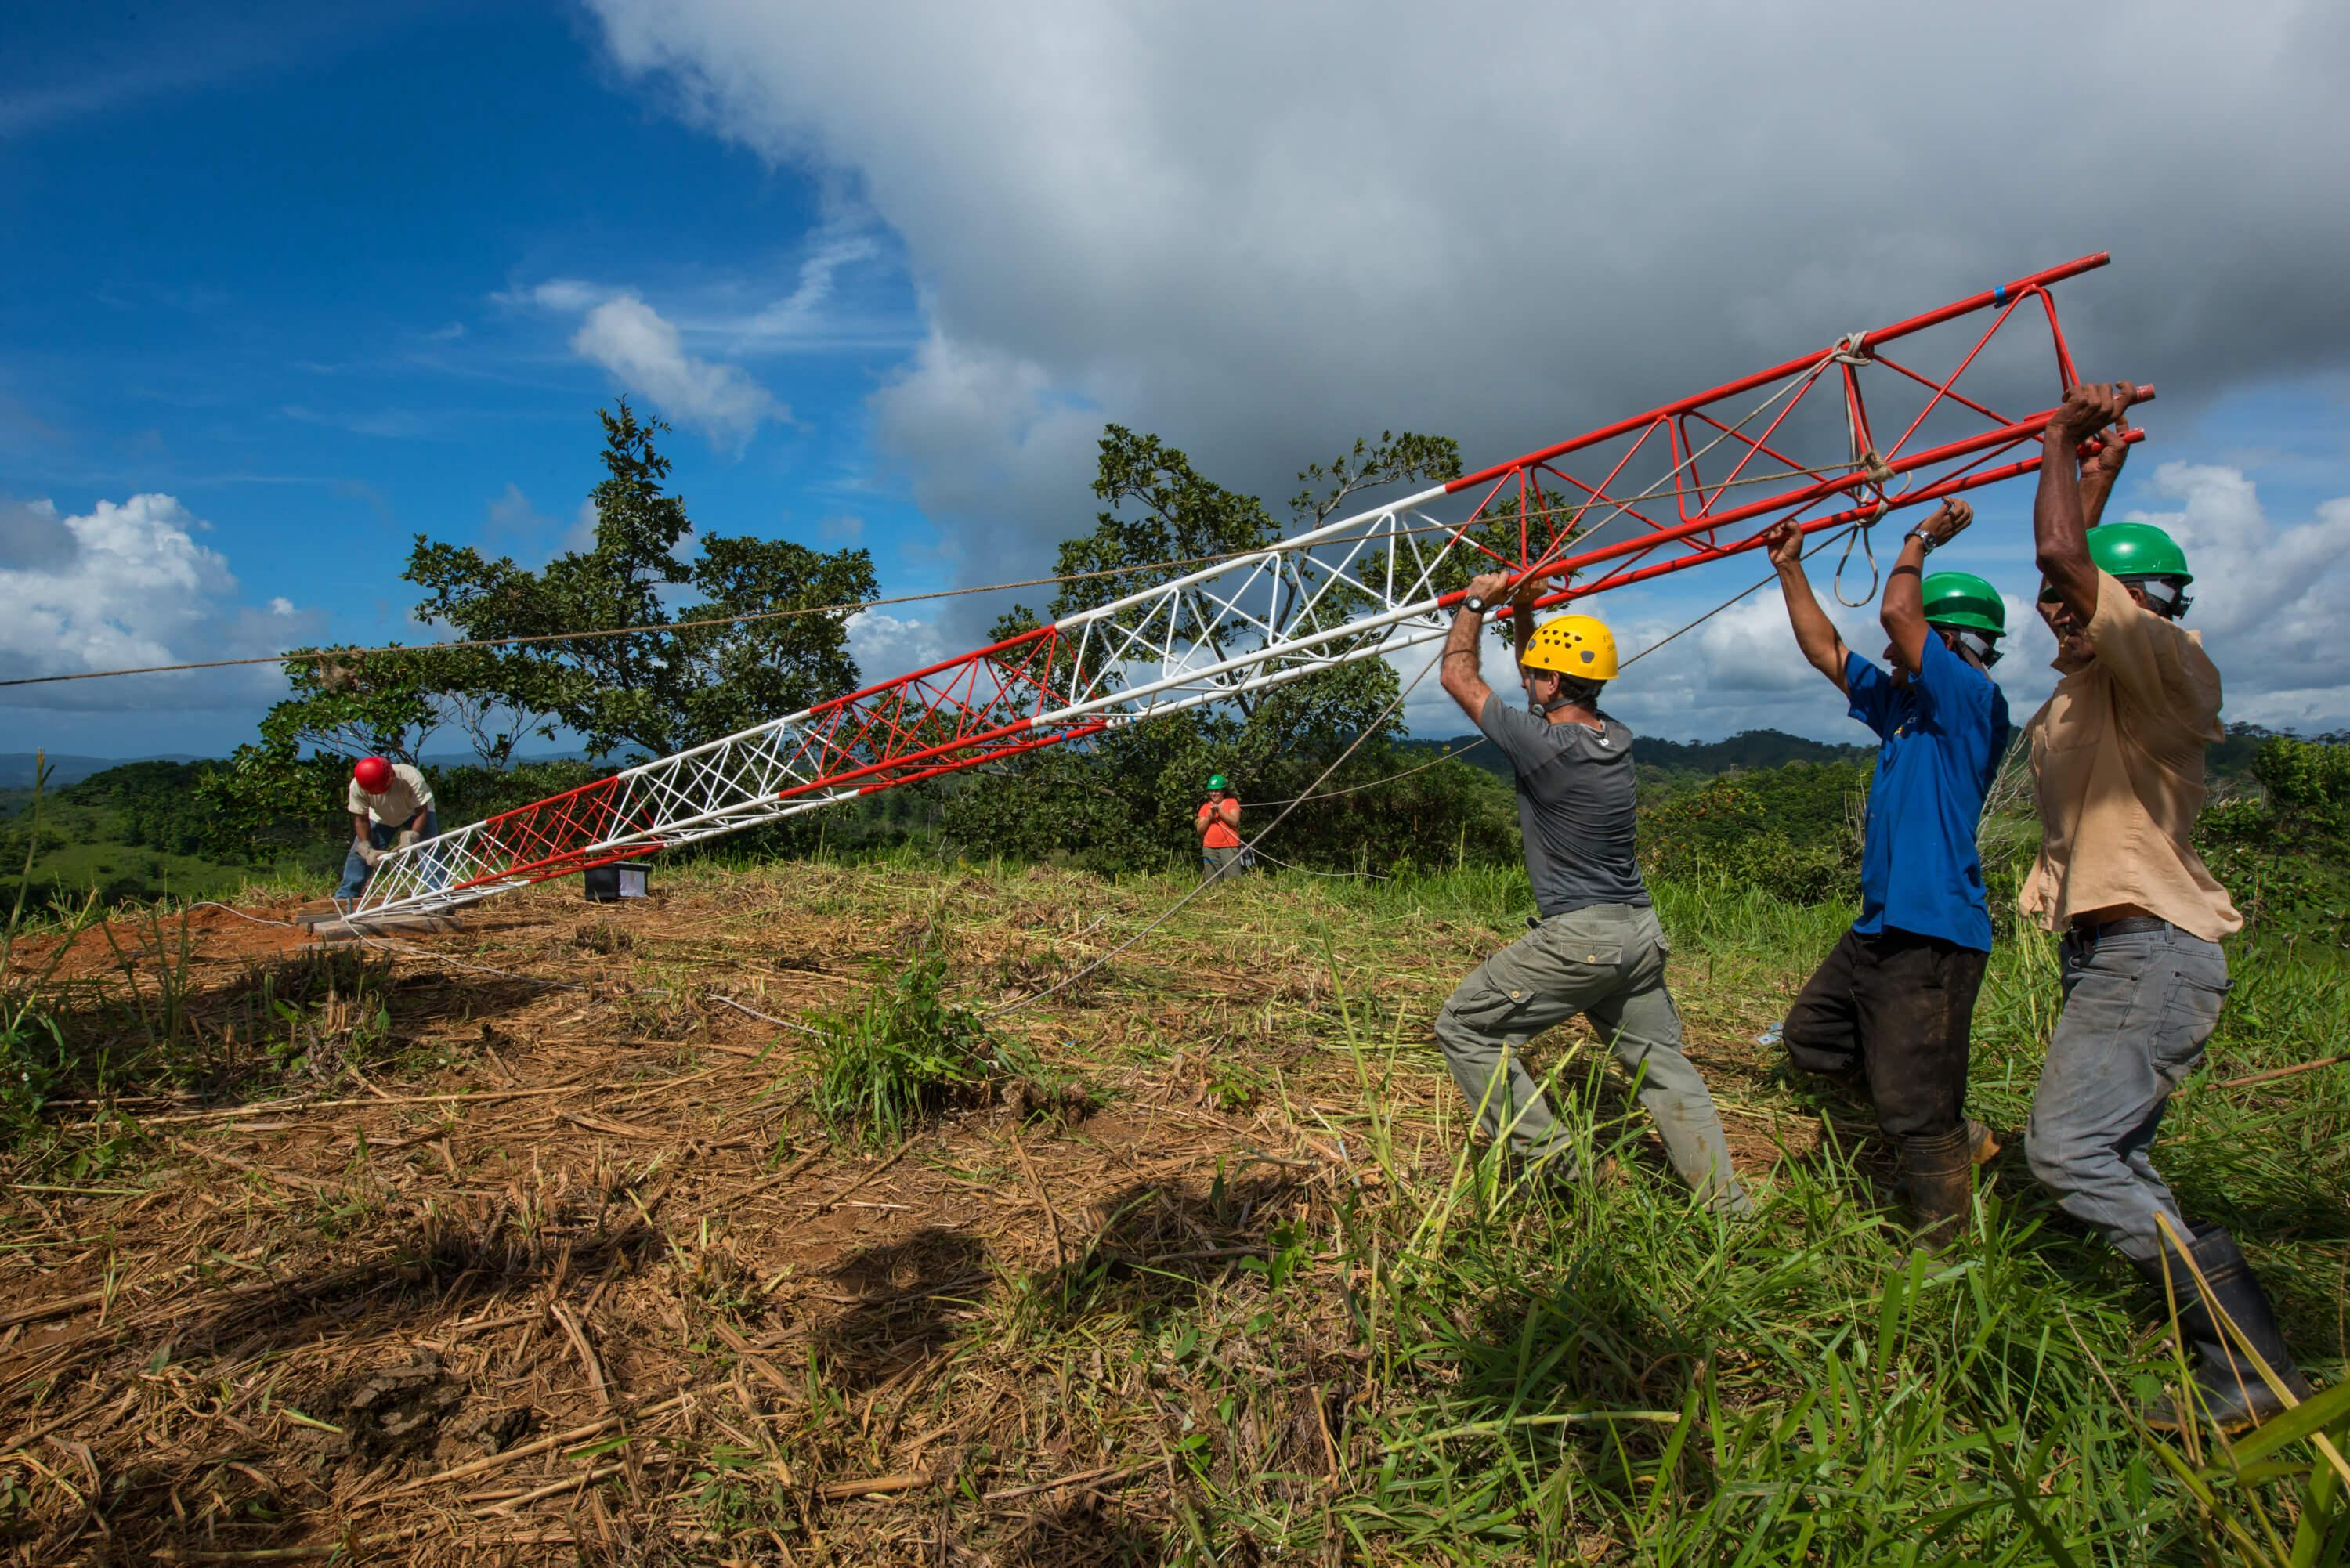 Technicians from the STRI Physical Monitoring Program install a meteorological tower. Two strategically located meteorological stations were made possible with support from the Heising-Simons Foundation. Photo credit Jorge Aleman.